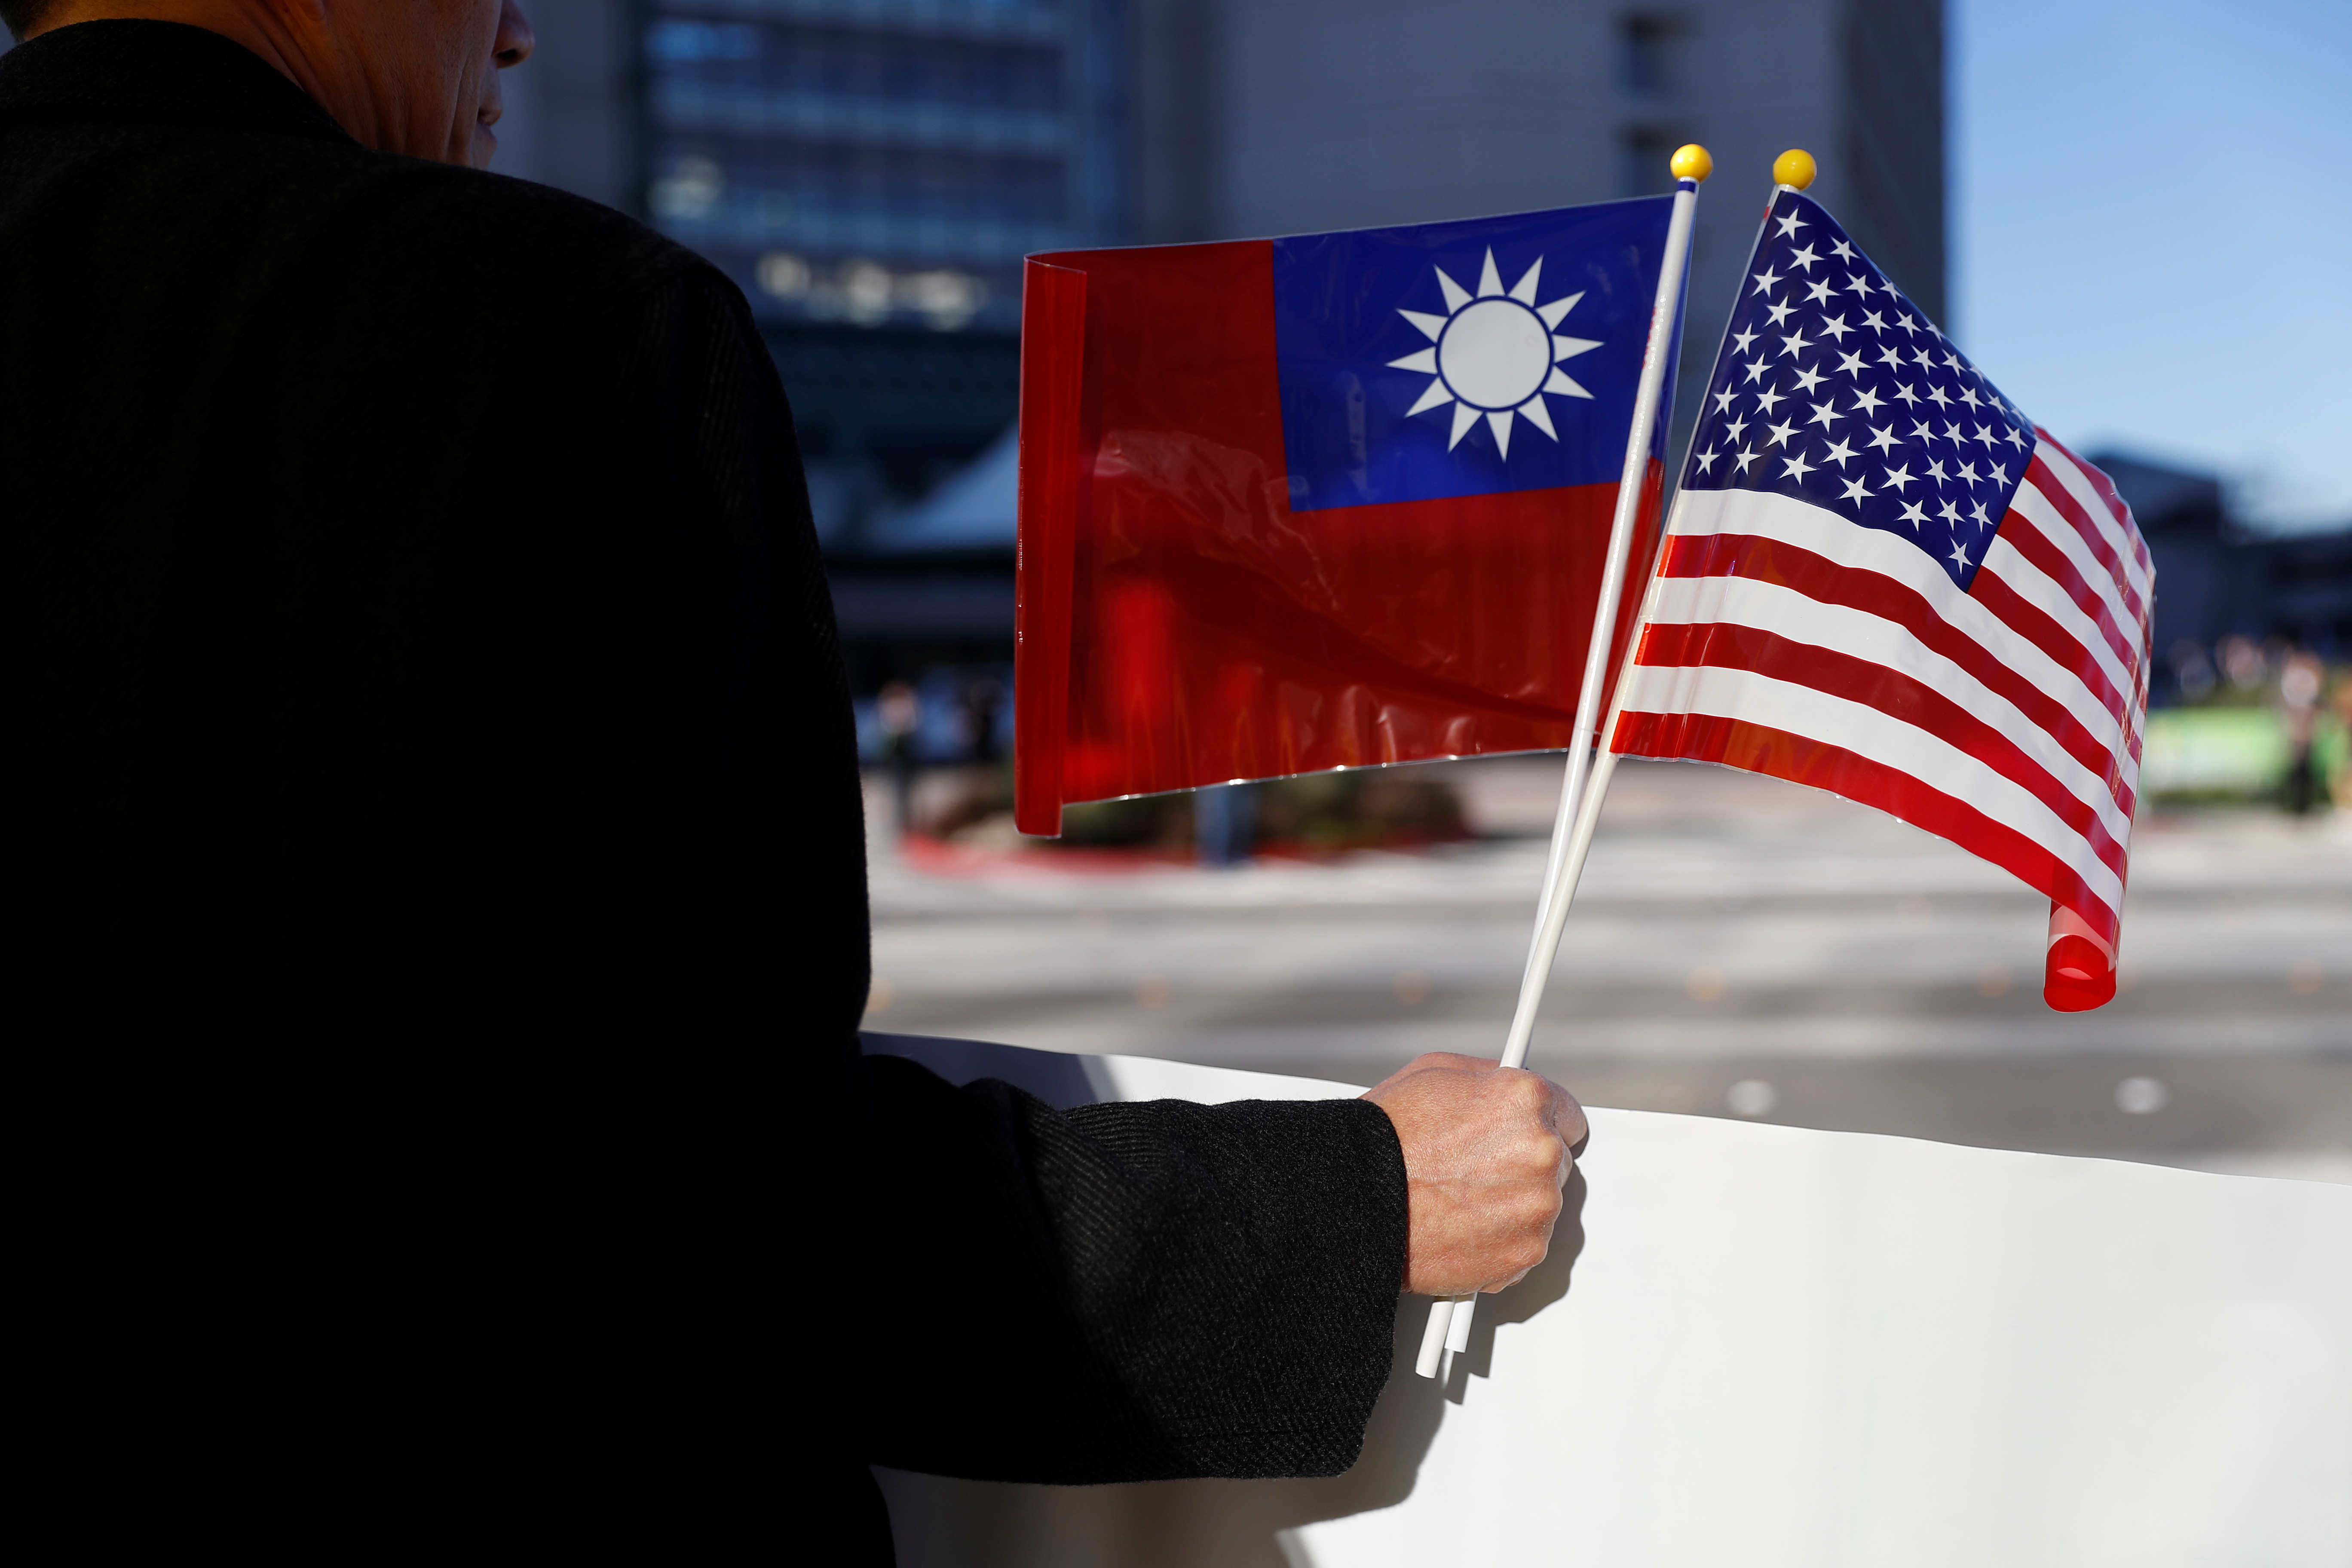 A demonstrator holds flags of Taiwan and the United States in support of Taiwanese President Tsai Ing-wen during an stop-over after her visit to Latin America in Burlingame